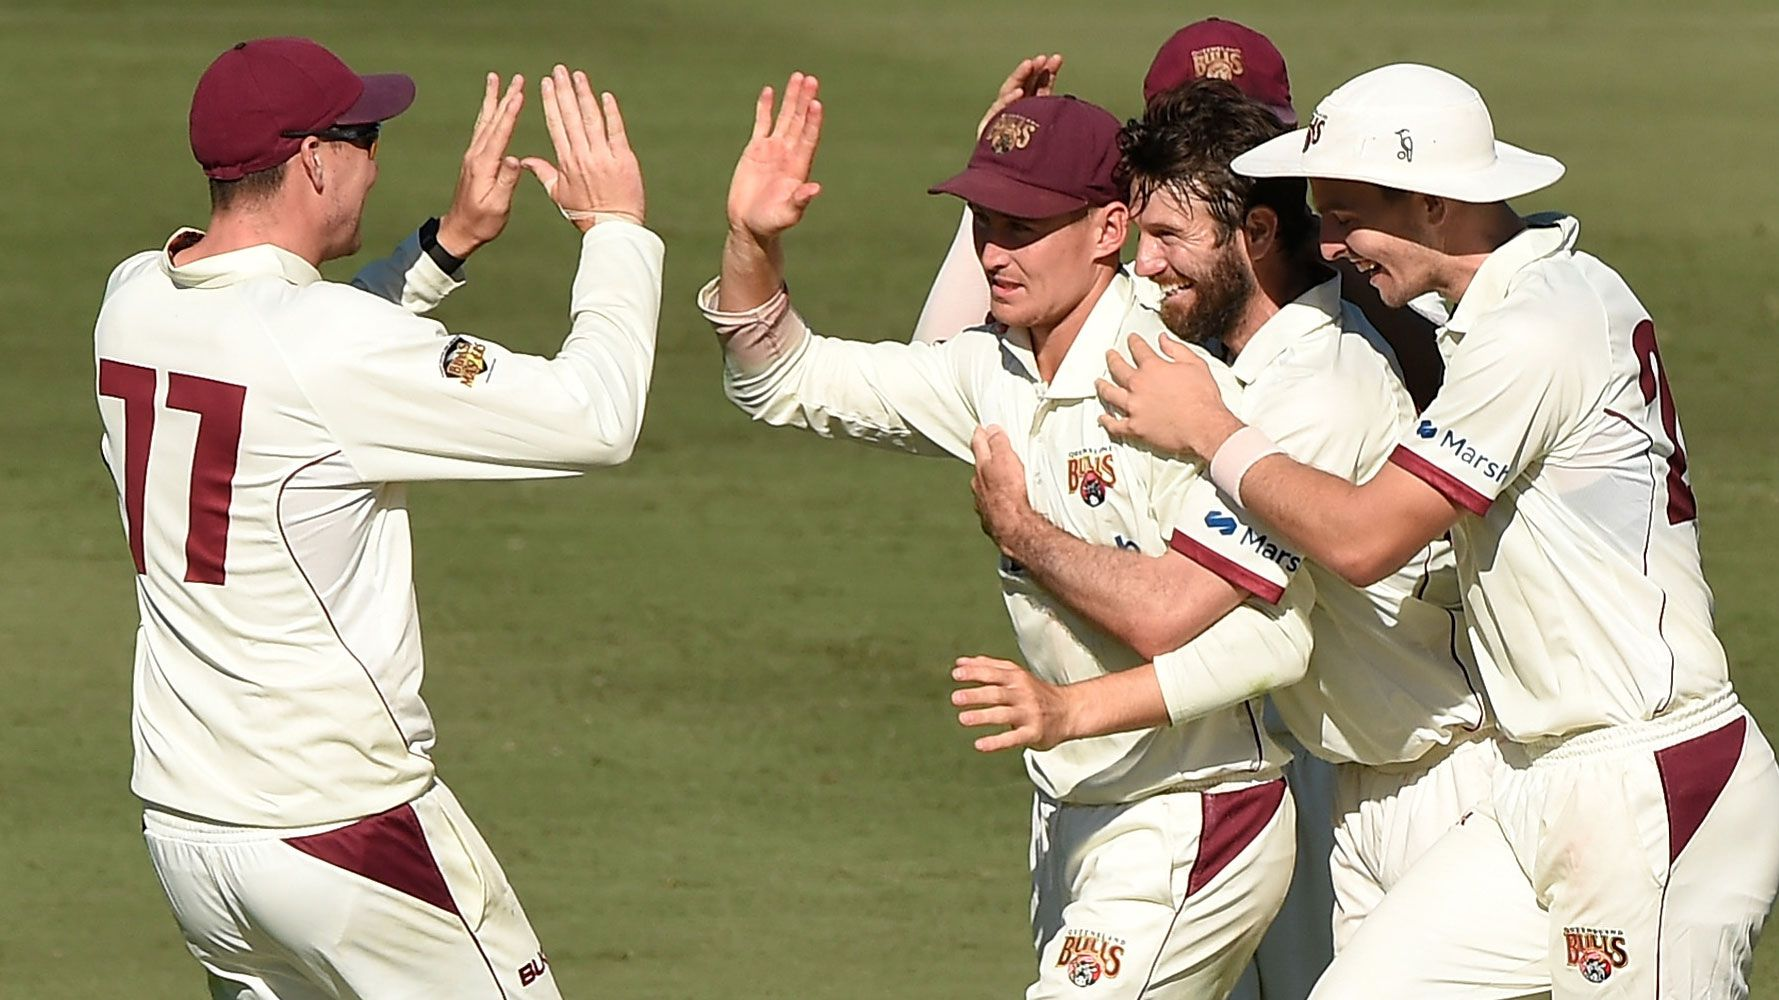 Marnus Labuschagne takes screamer in the covers to end NSW innings in Shield final